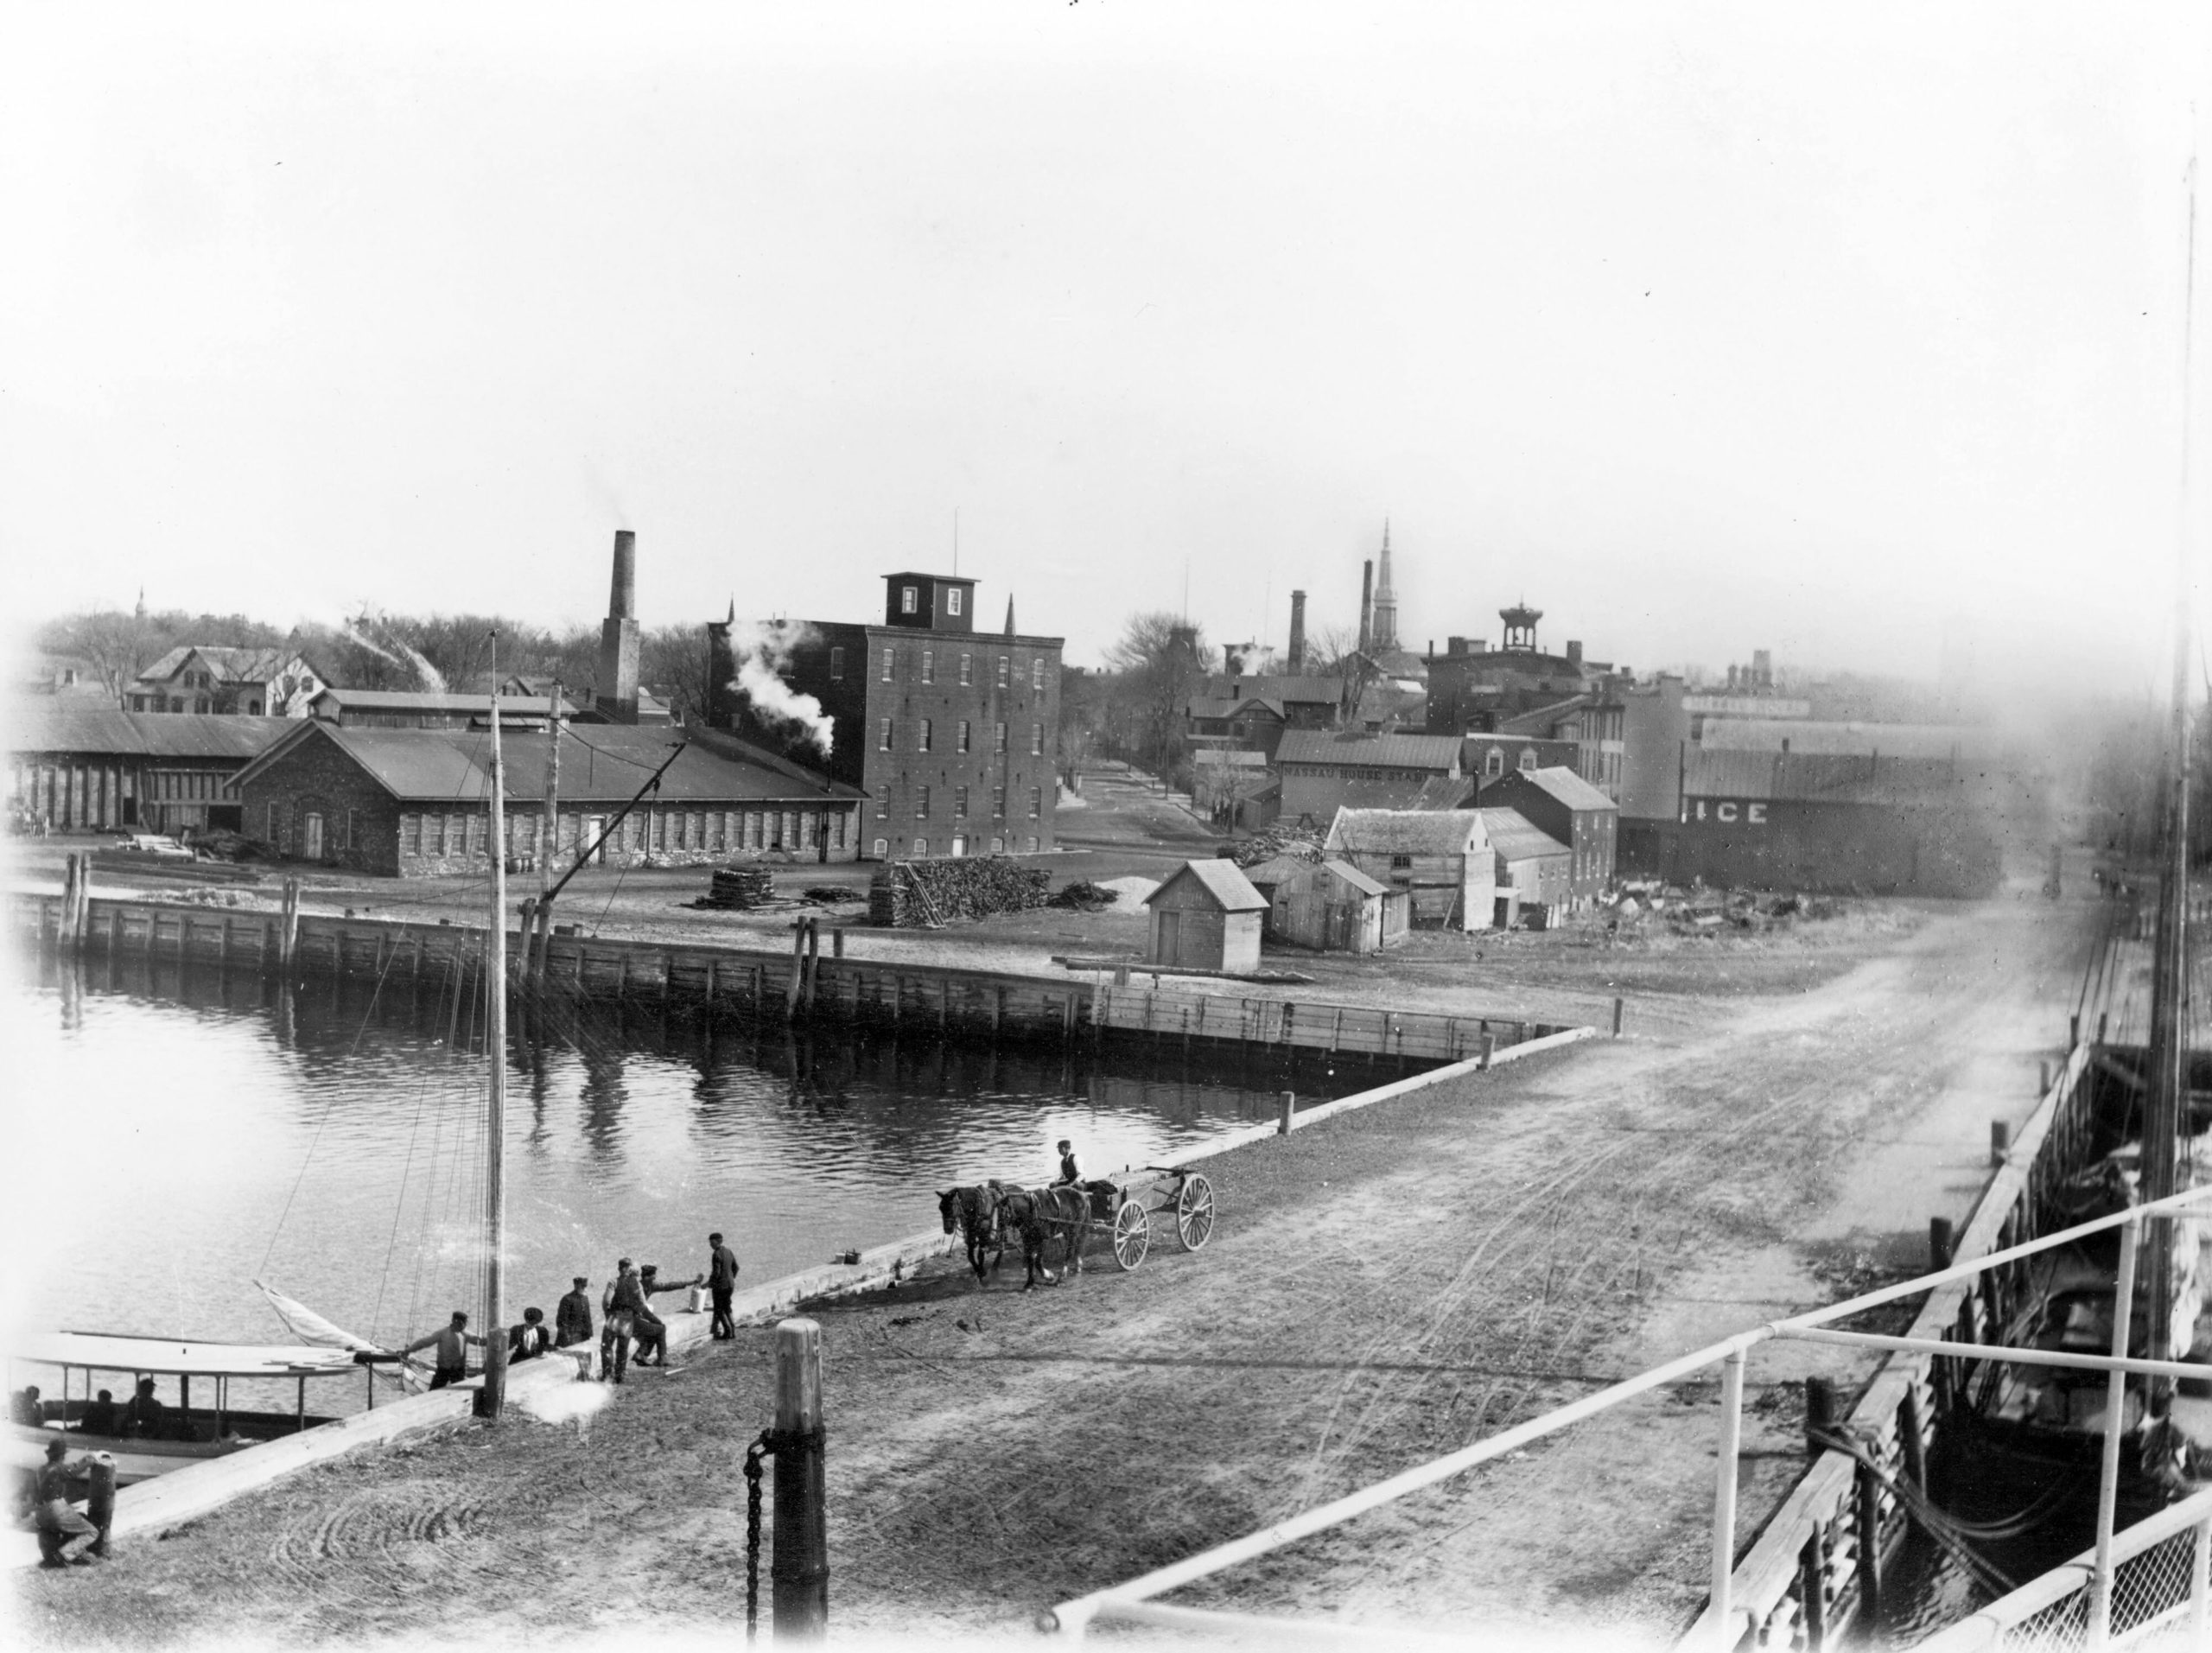 Photo of Long Wharf by William Wallace Tooker. Courtesy of the Kevin J. McCann Collection